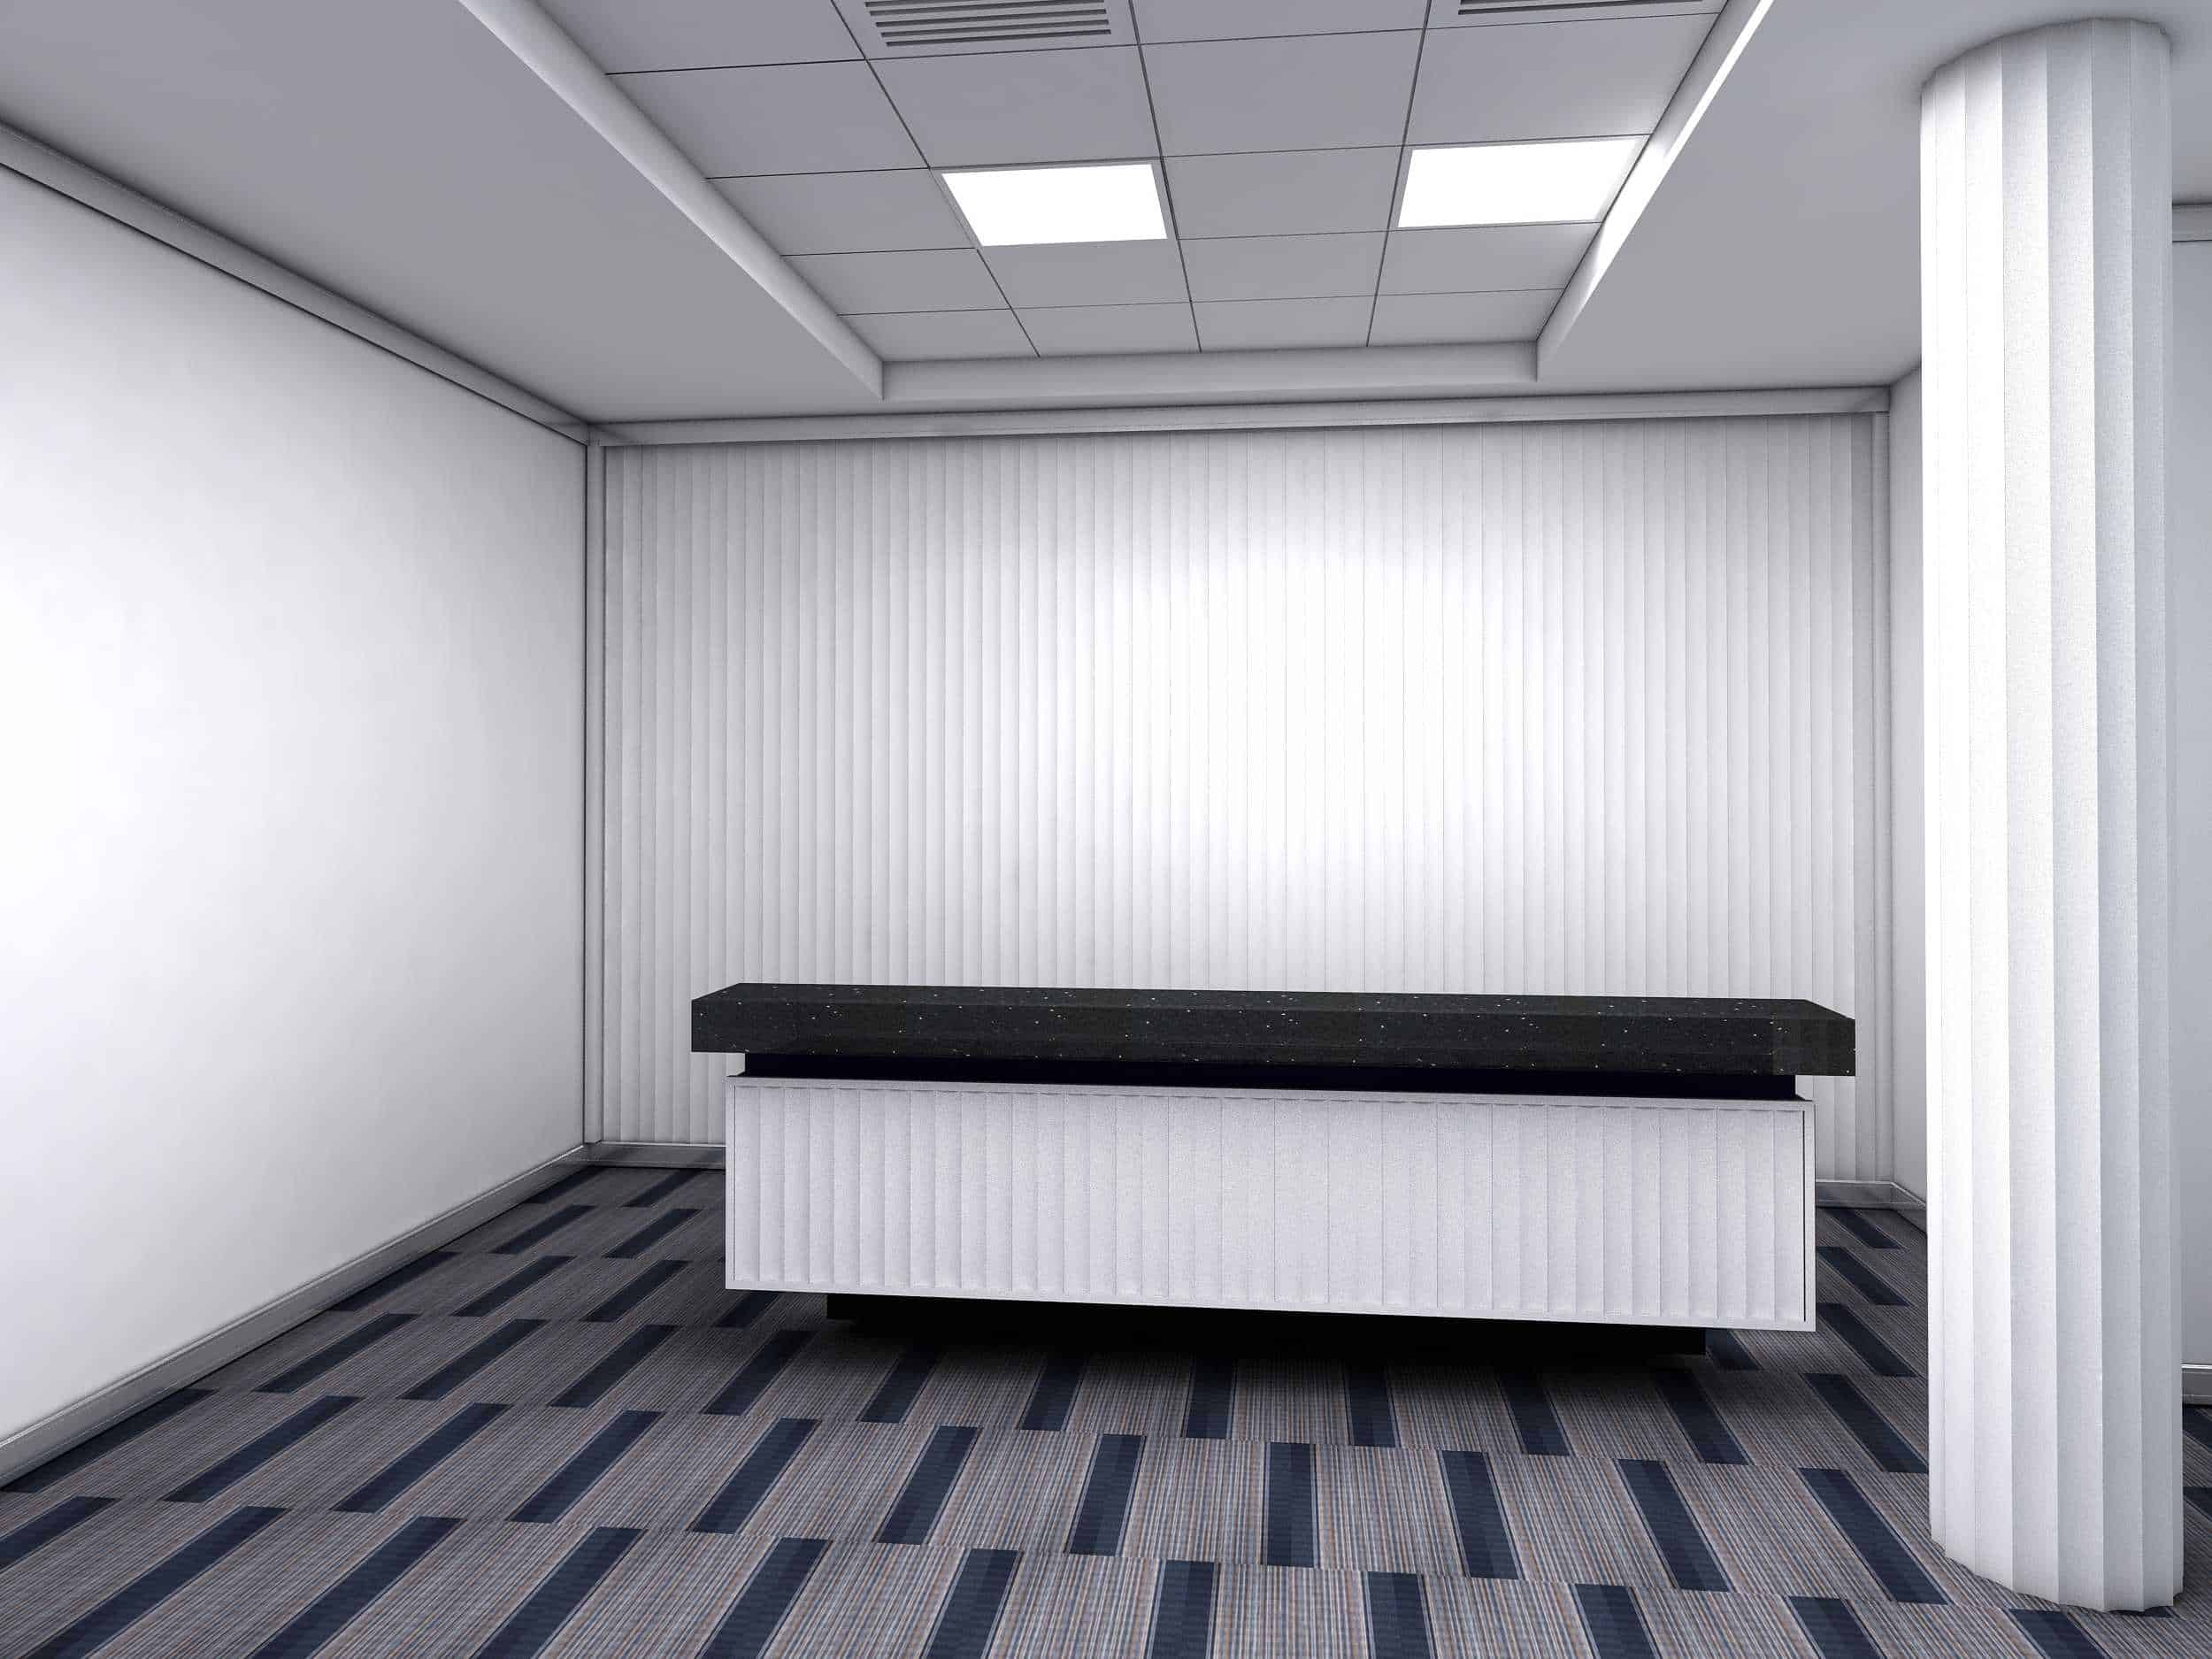 IQUBX internal wall paneling can be used on partitions, columns, even furniture